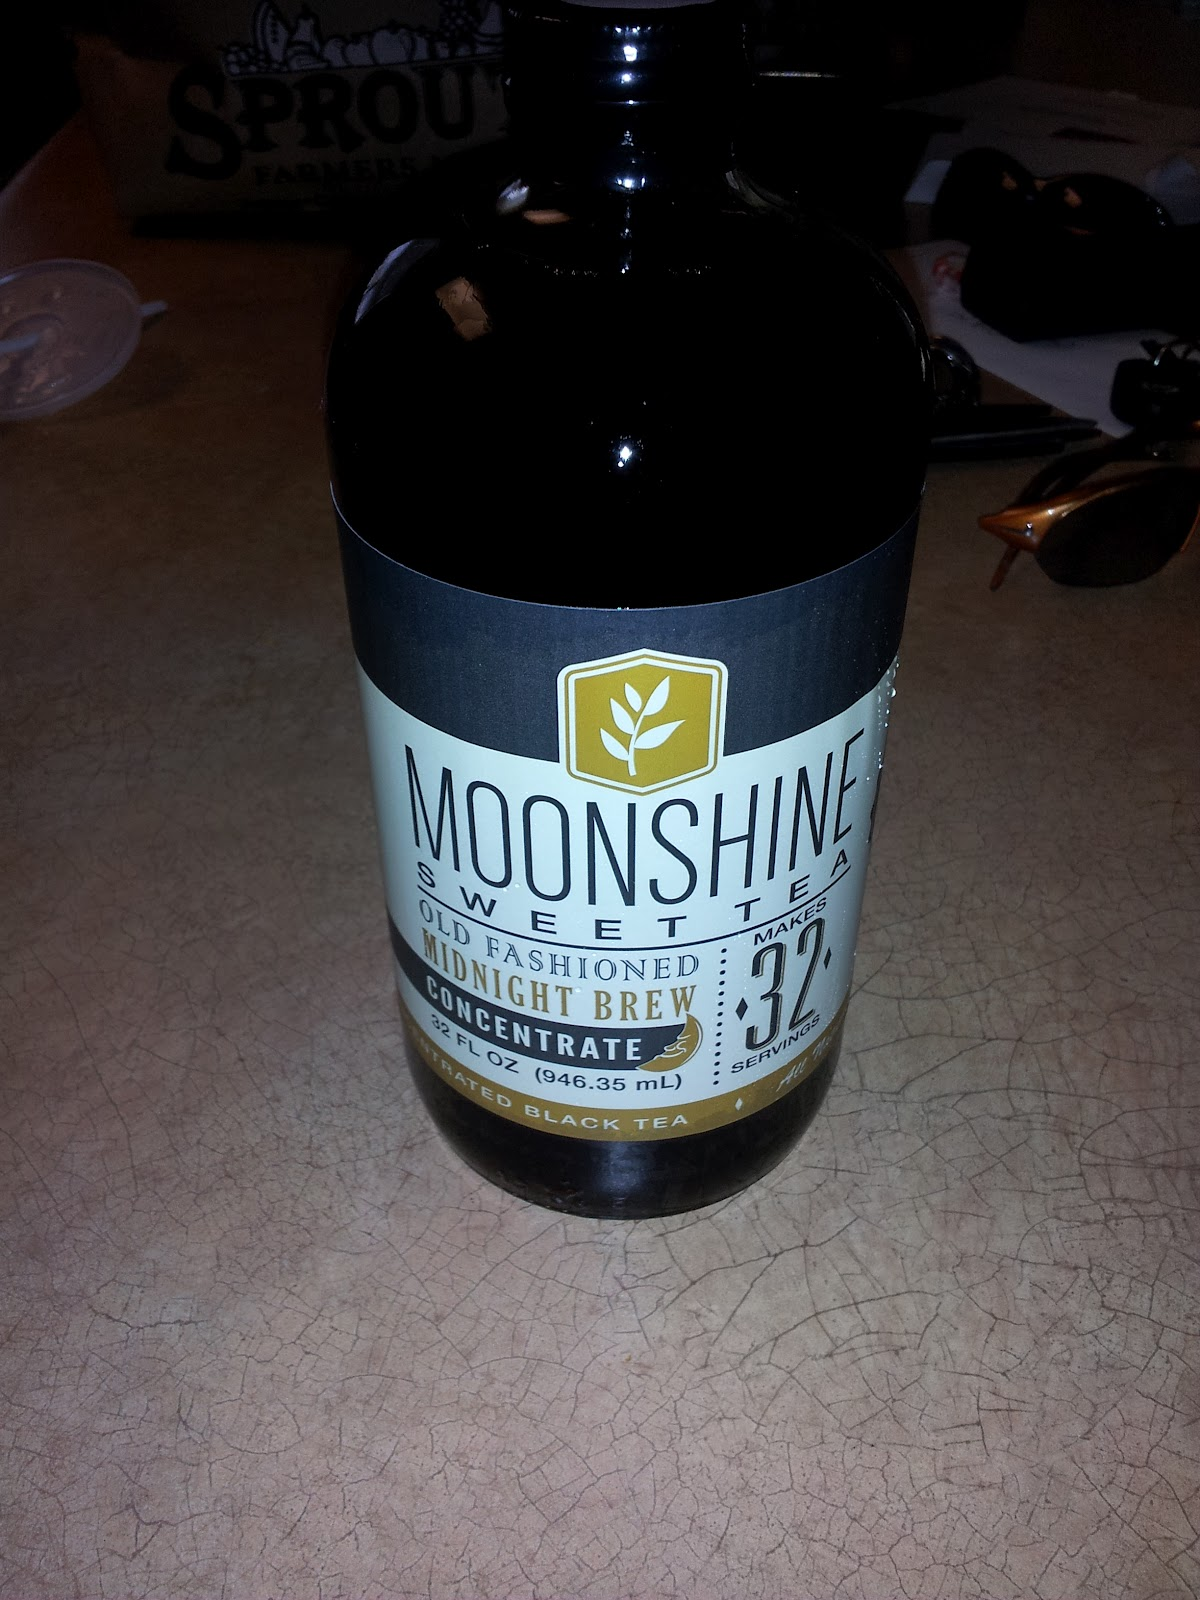 Texan's Tasty Treats: Moonshine Sweet Tea